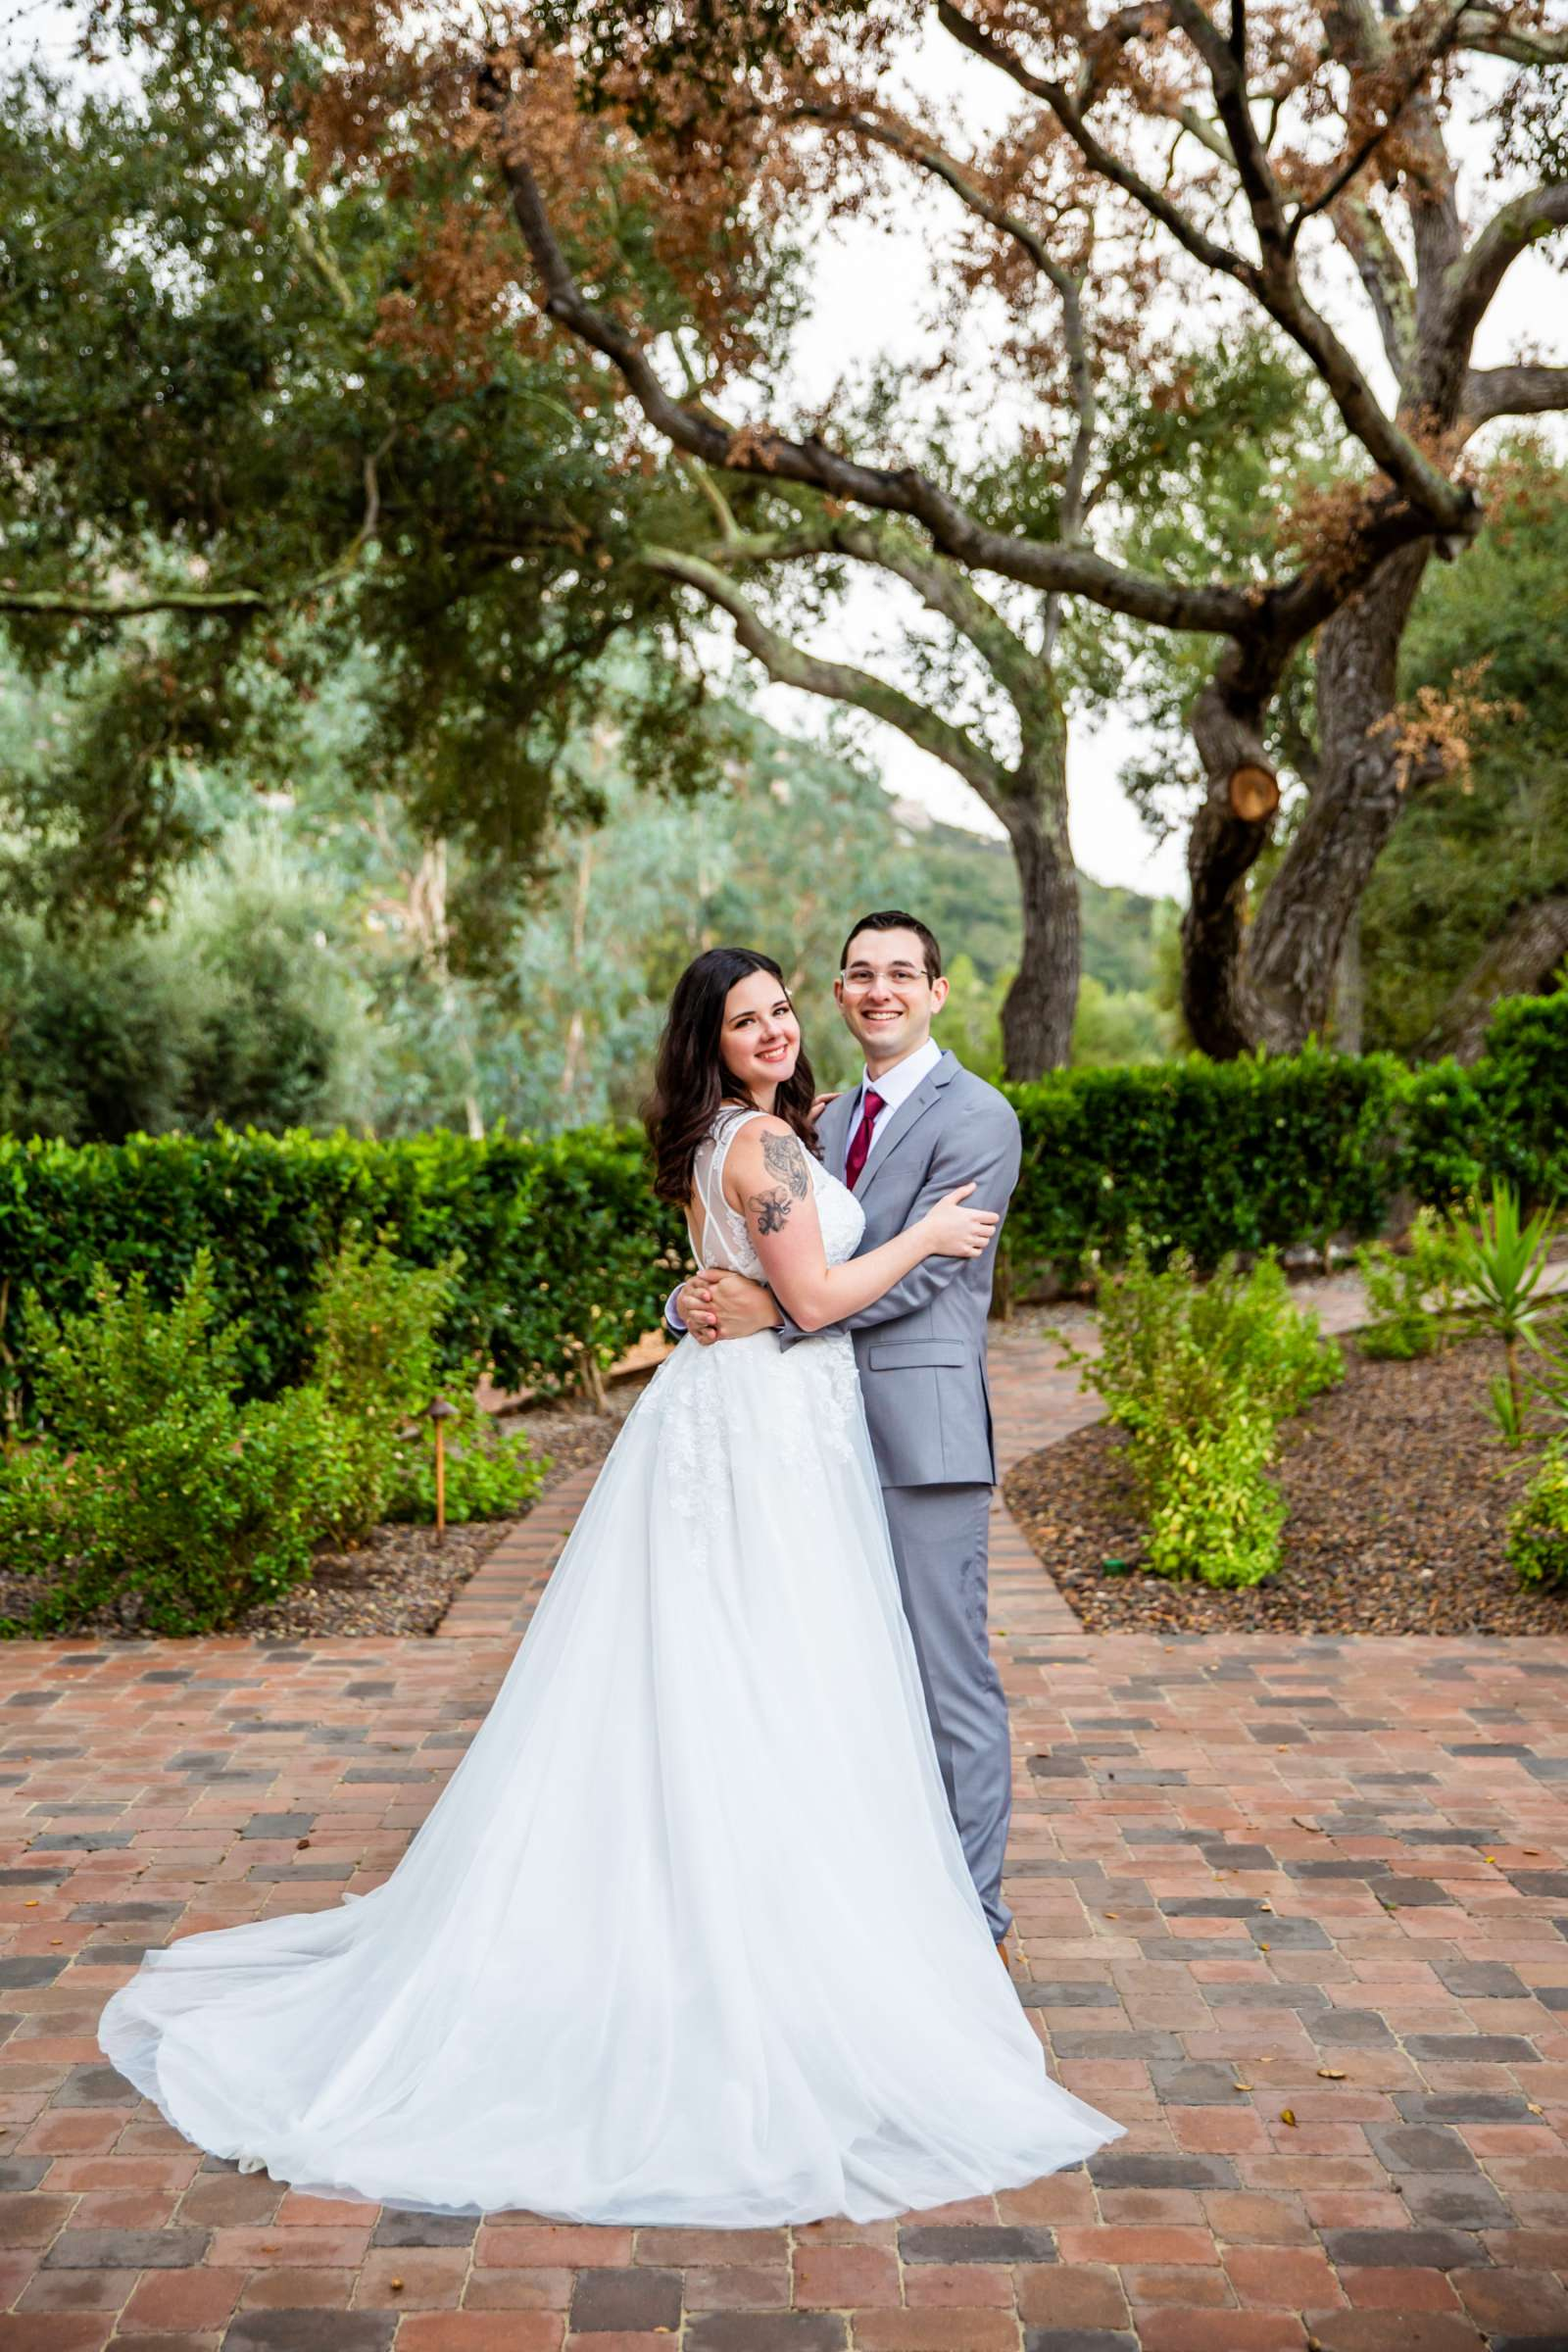 Mt Woodson Castle Wedding, Valerie and Ian Wedding Photo #2 by True Photography